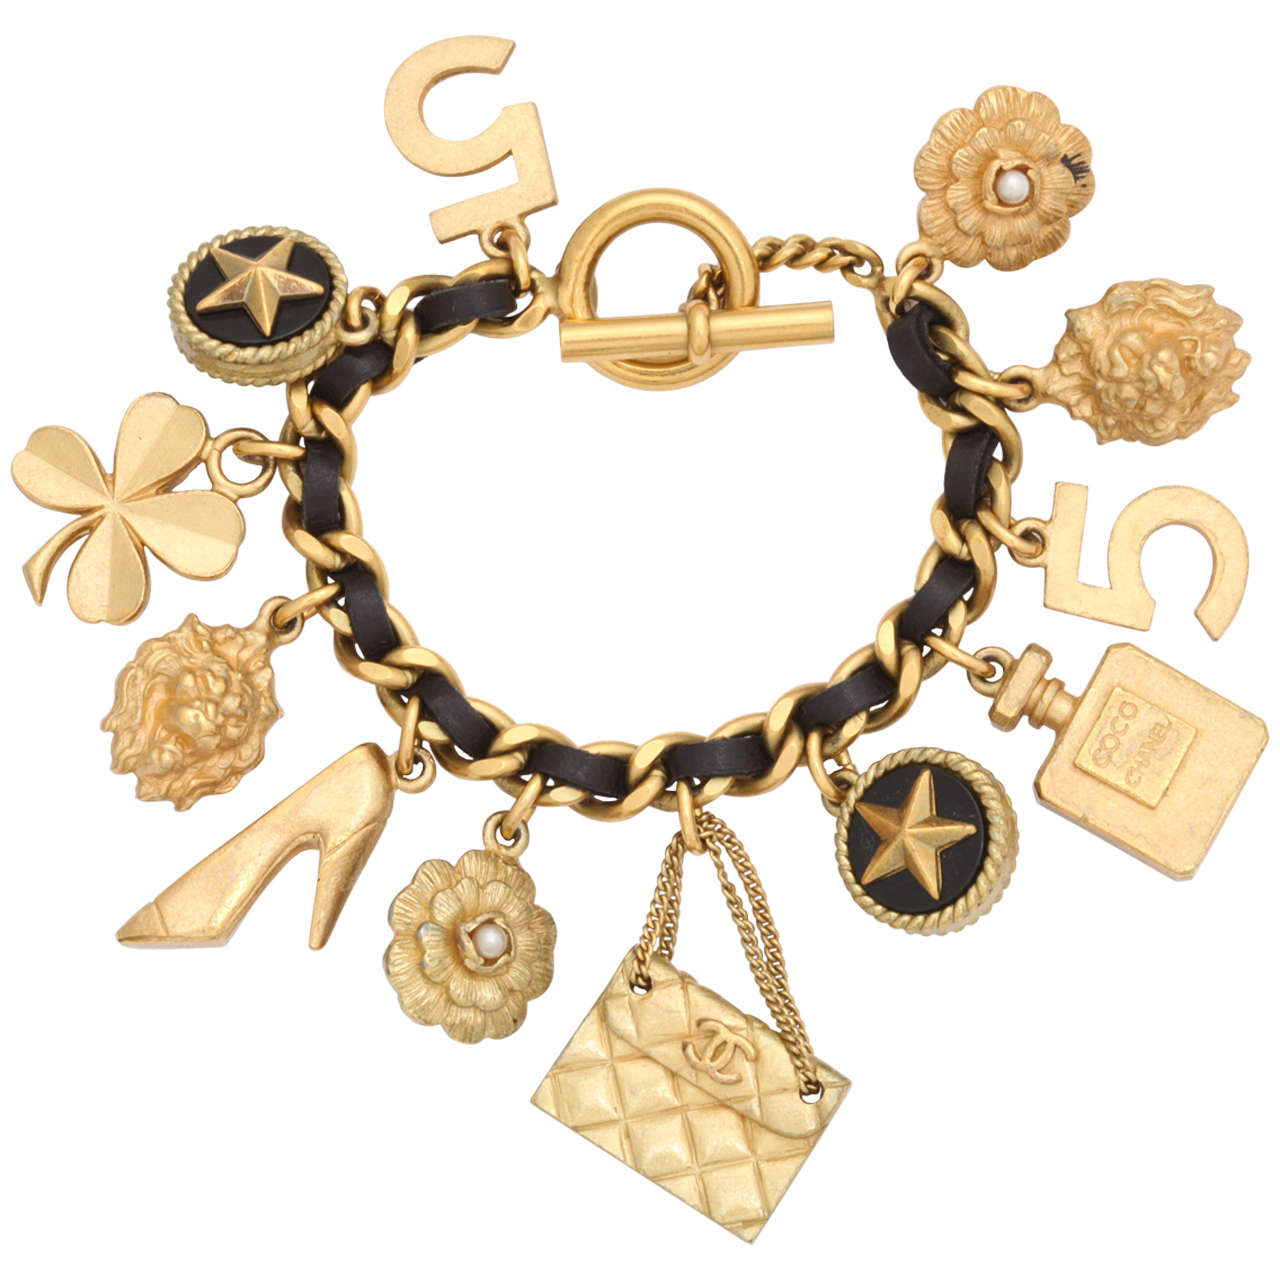 Vintage Chanel Iconic Charm Bracelet with Black Leather ...